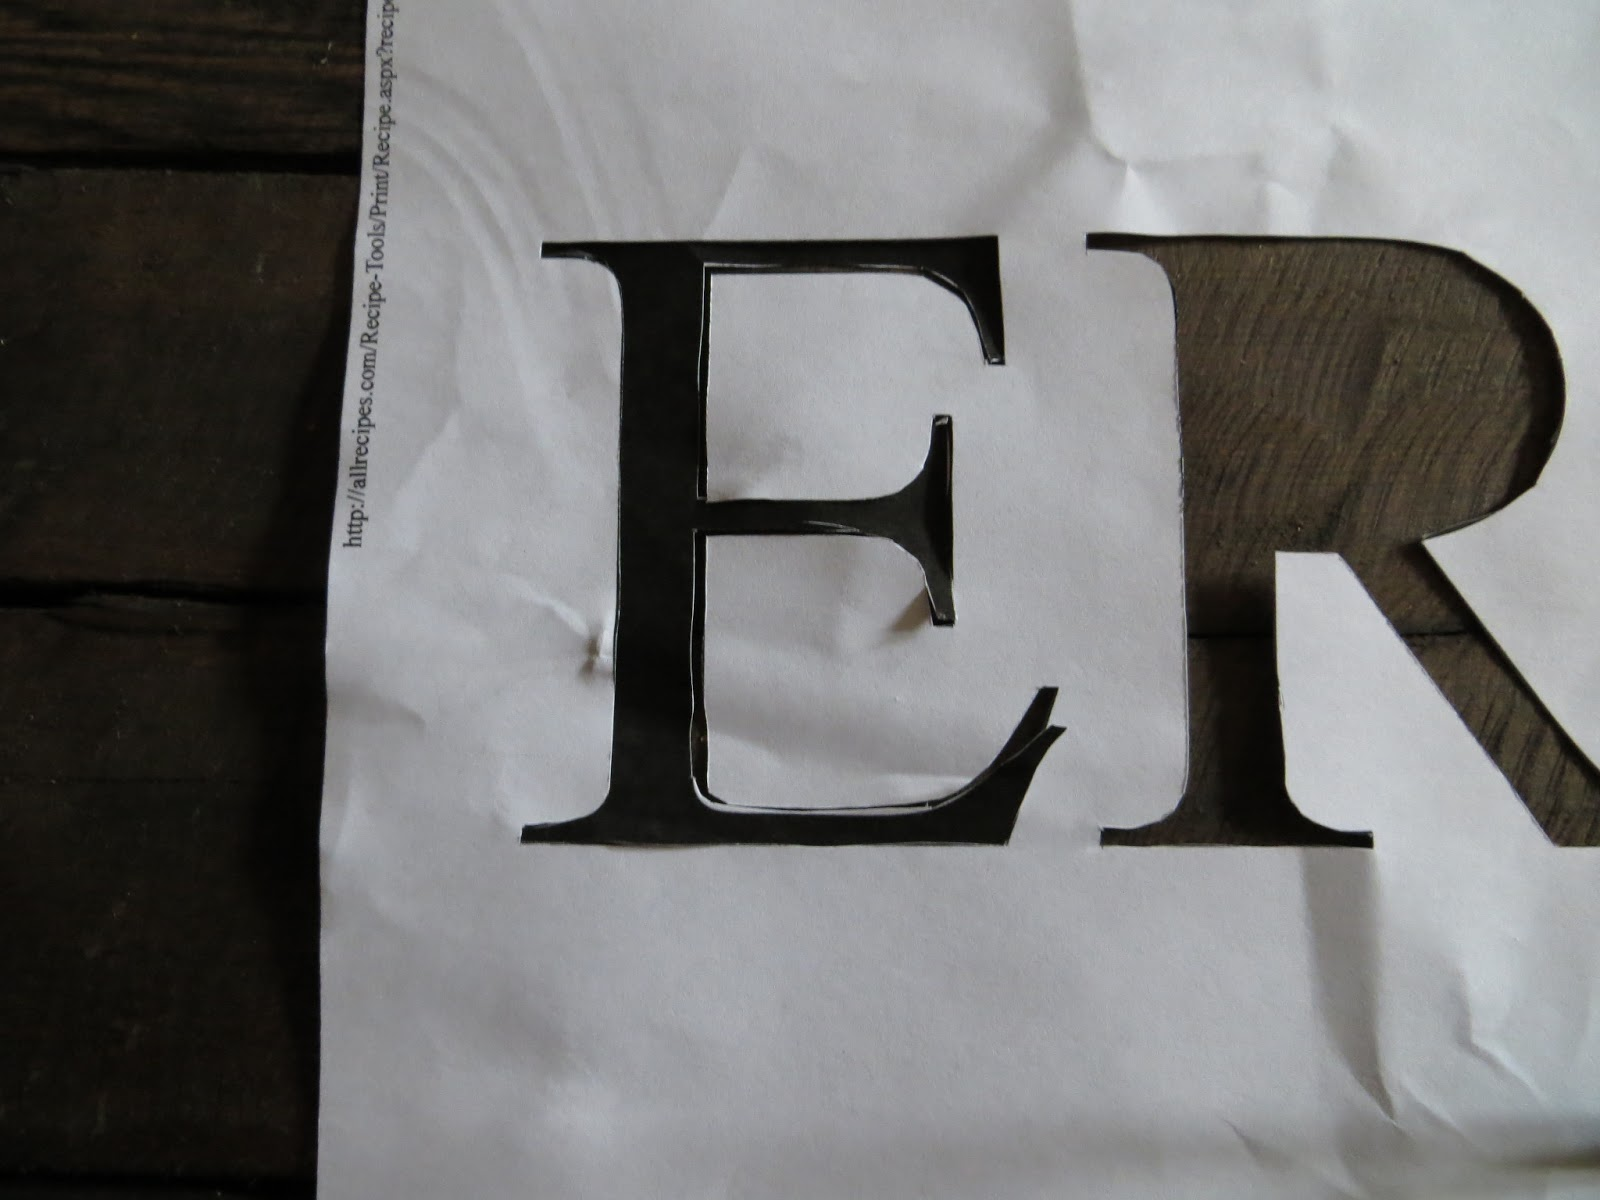 the other method is this you place the stencil over the cut out letters and remove the black letter after that trace the empty letter onto the wood